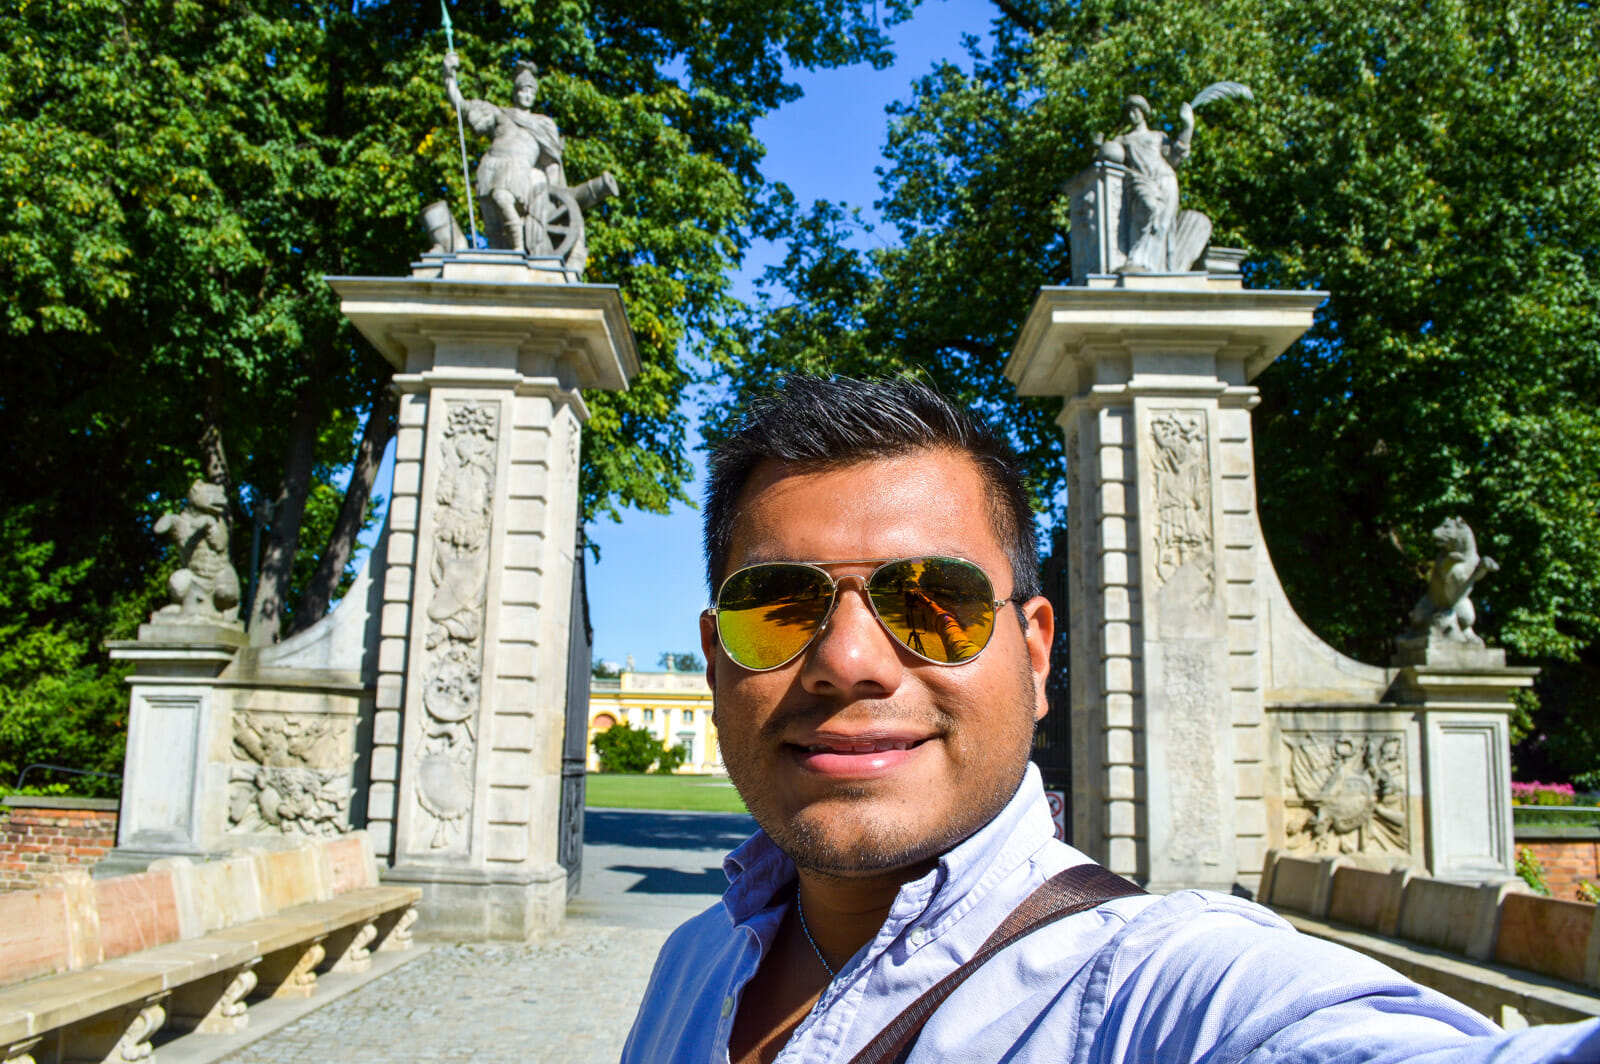 Selfie of Wonders at the Wilanow Palace